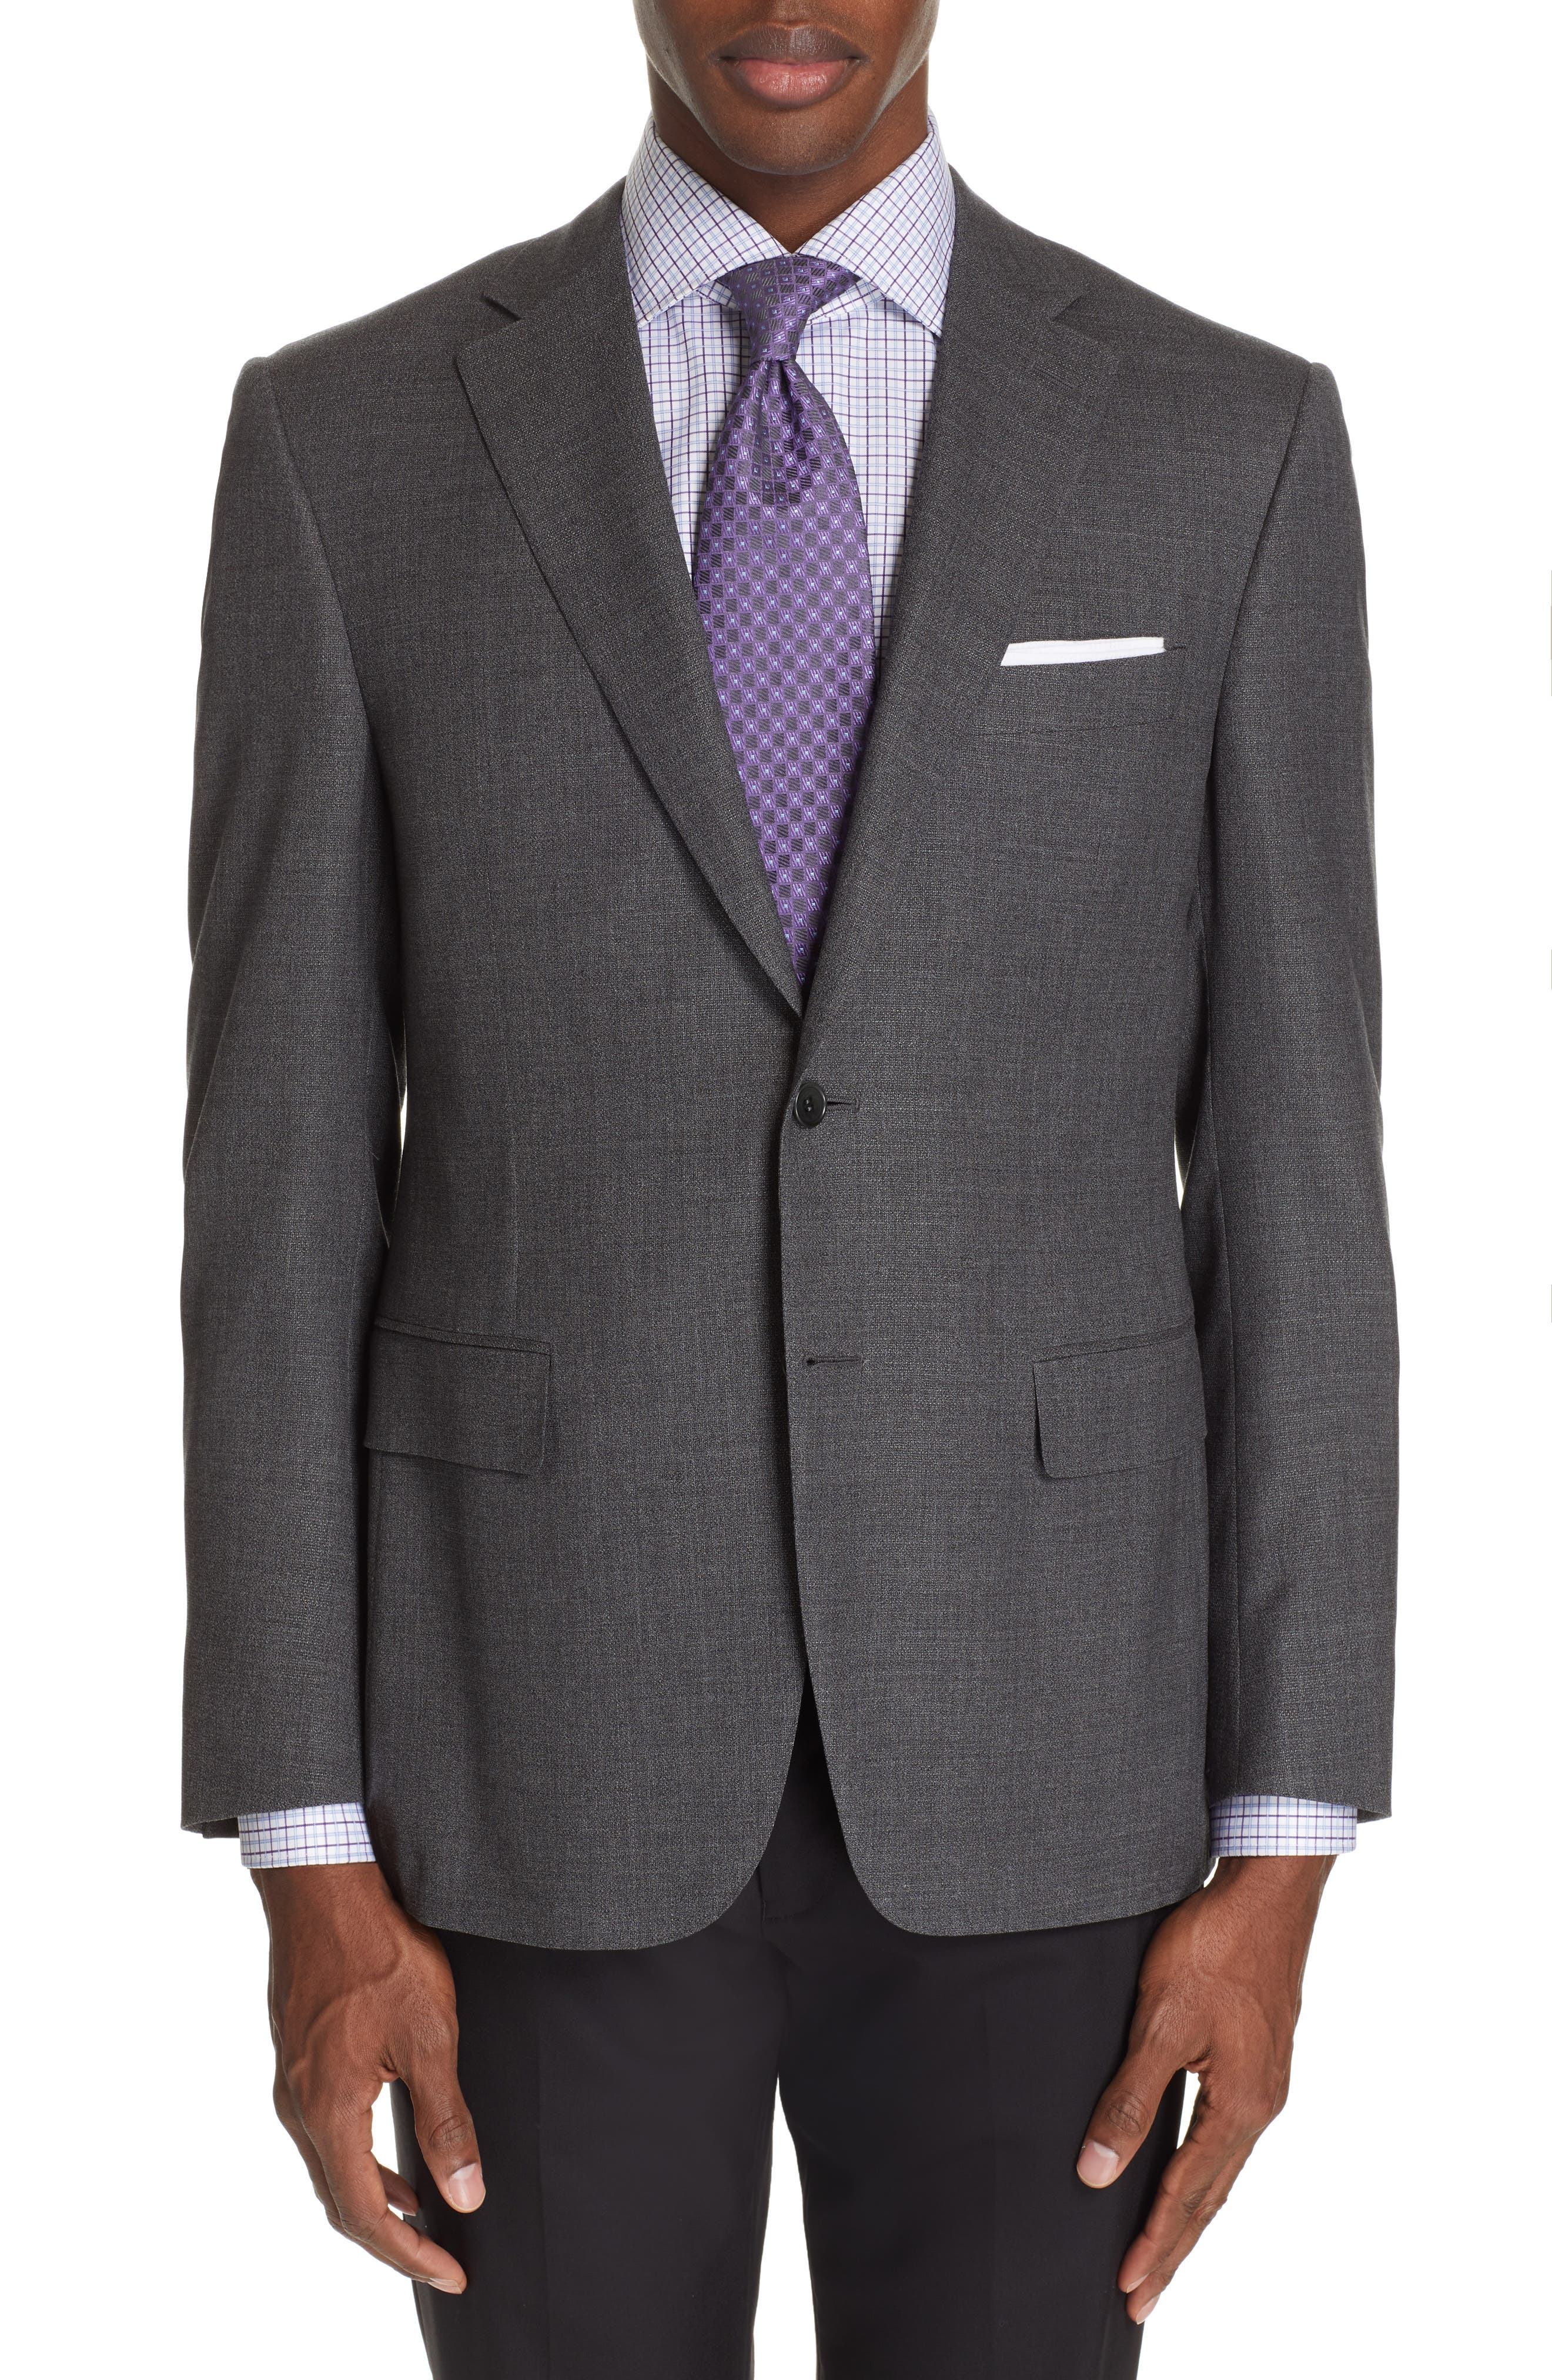 Sienna Classic Fit Solid Wool Sport Coat, Main, color, CHARCOAL